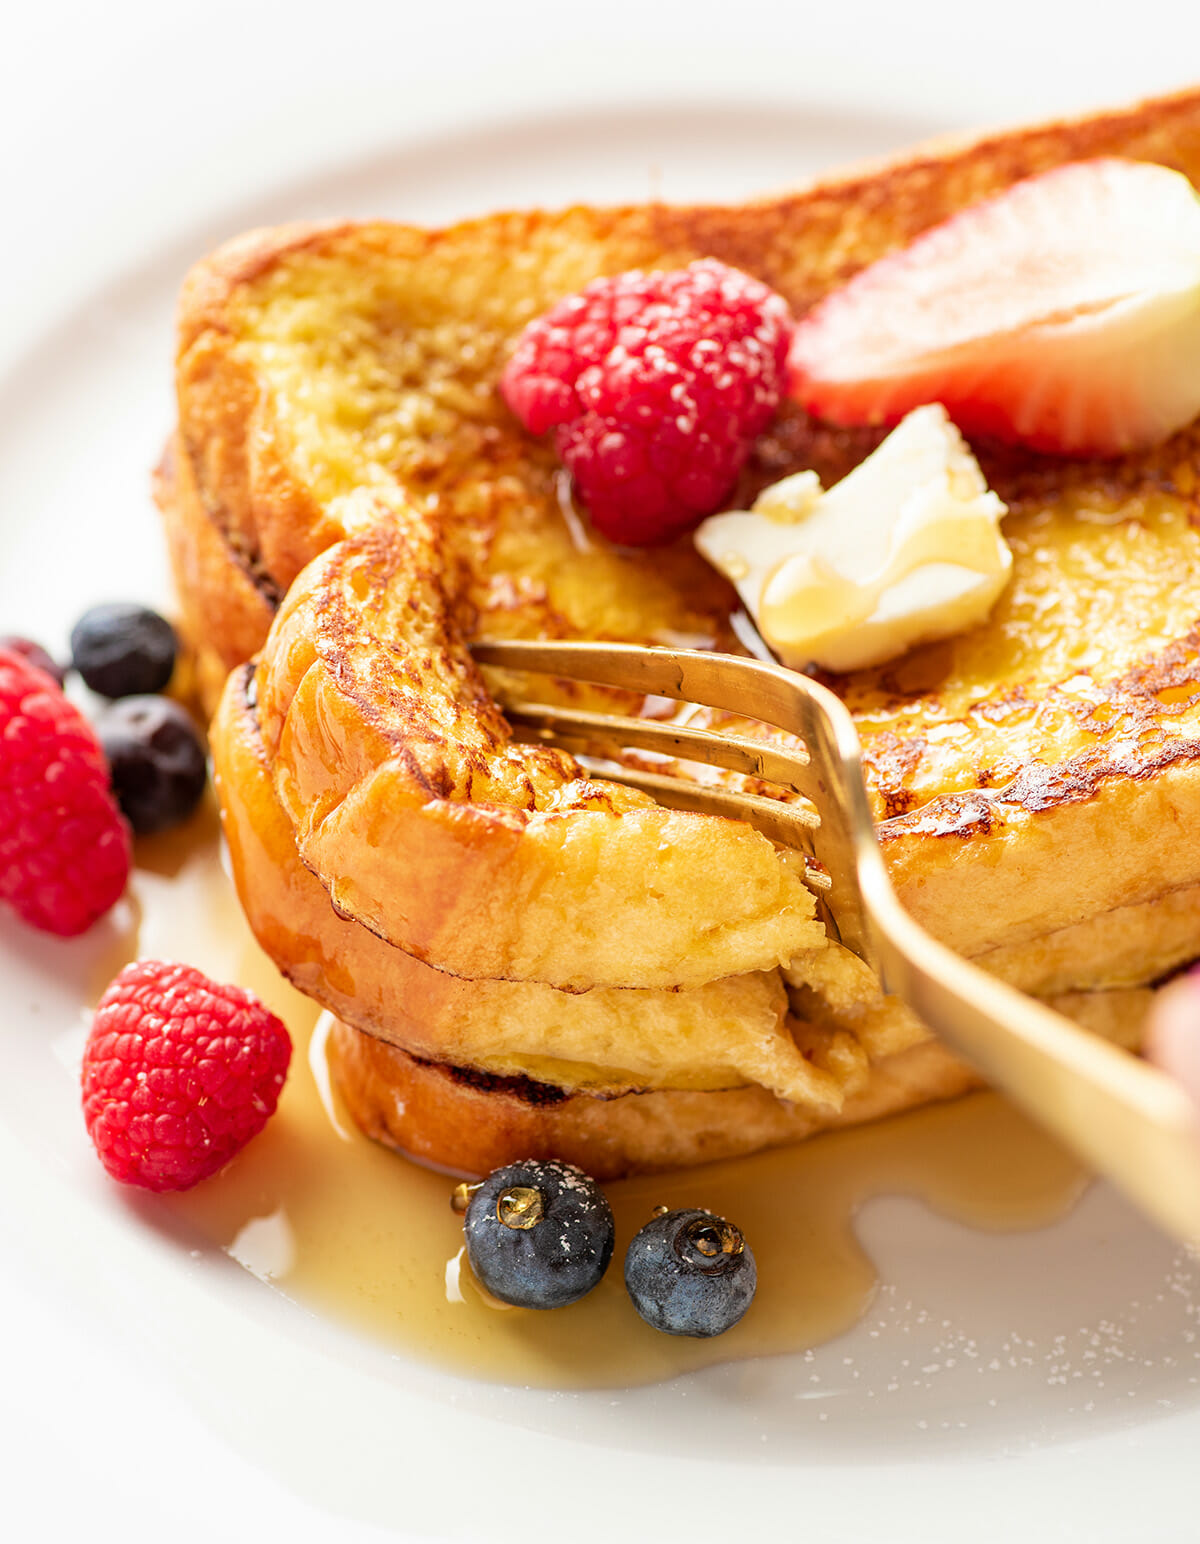 Homemade easy French toast topped with maple syrup and berries